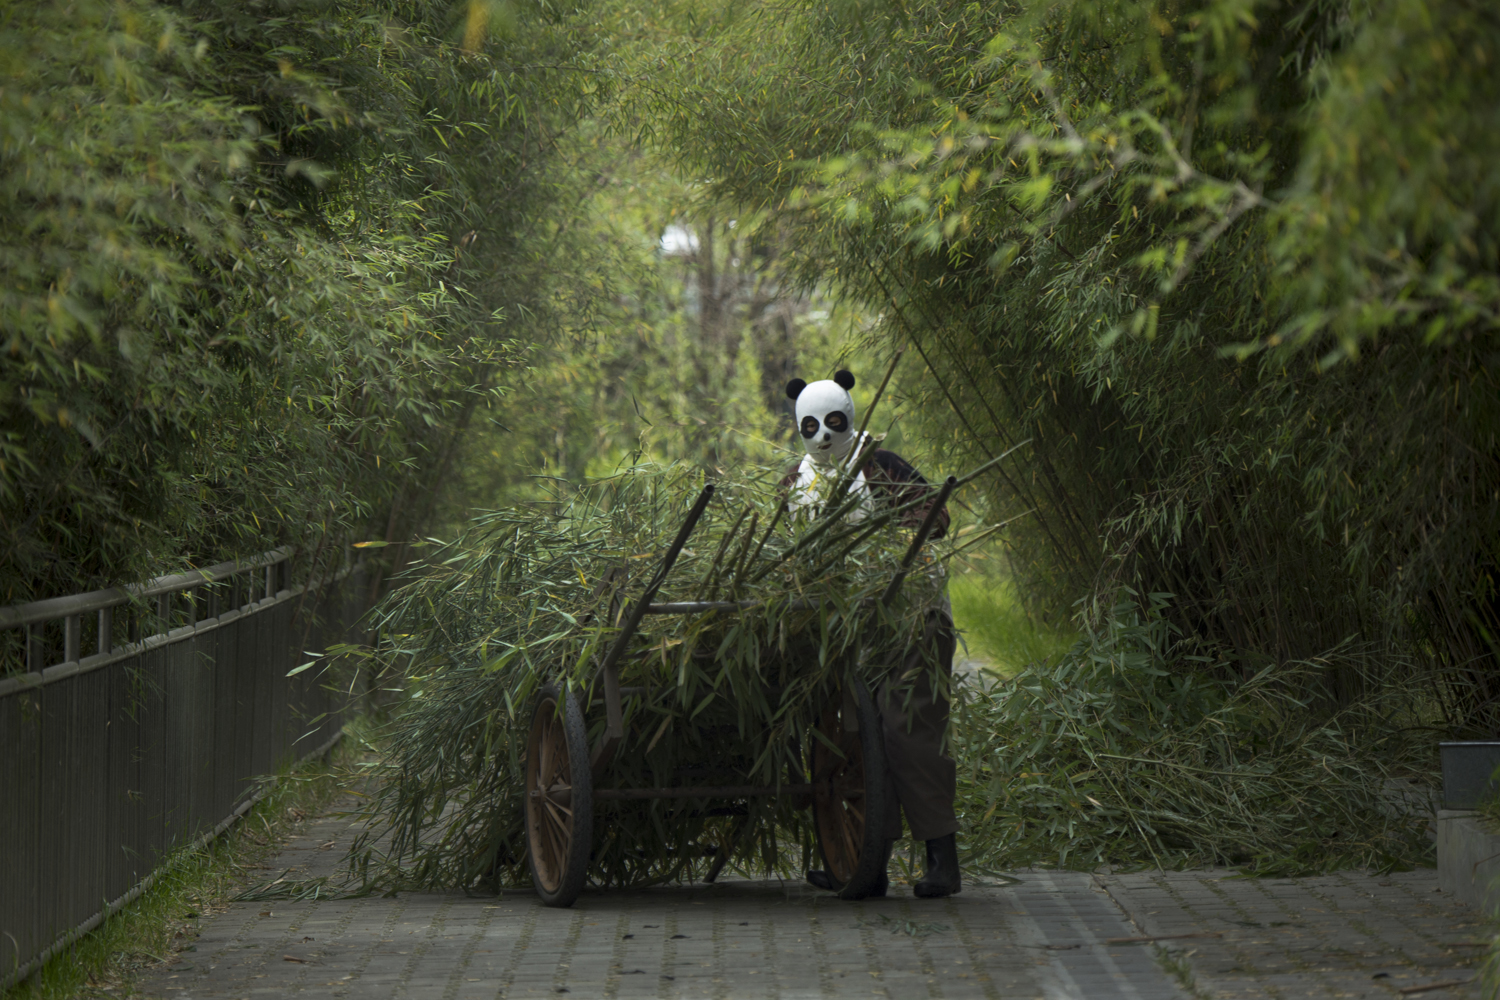 A caretaker brings bamboo to a captive panda that is being trained for release into the wild at the Wolong National Nature Reserve. Caretakers must dress as pandas so that the animals never see a human being before being released.